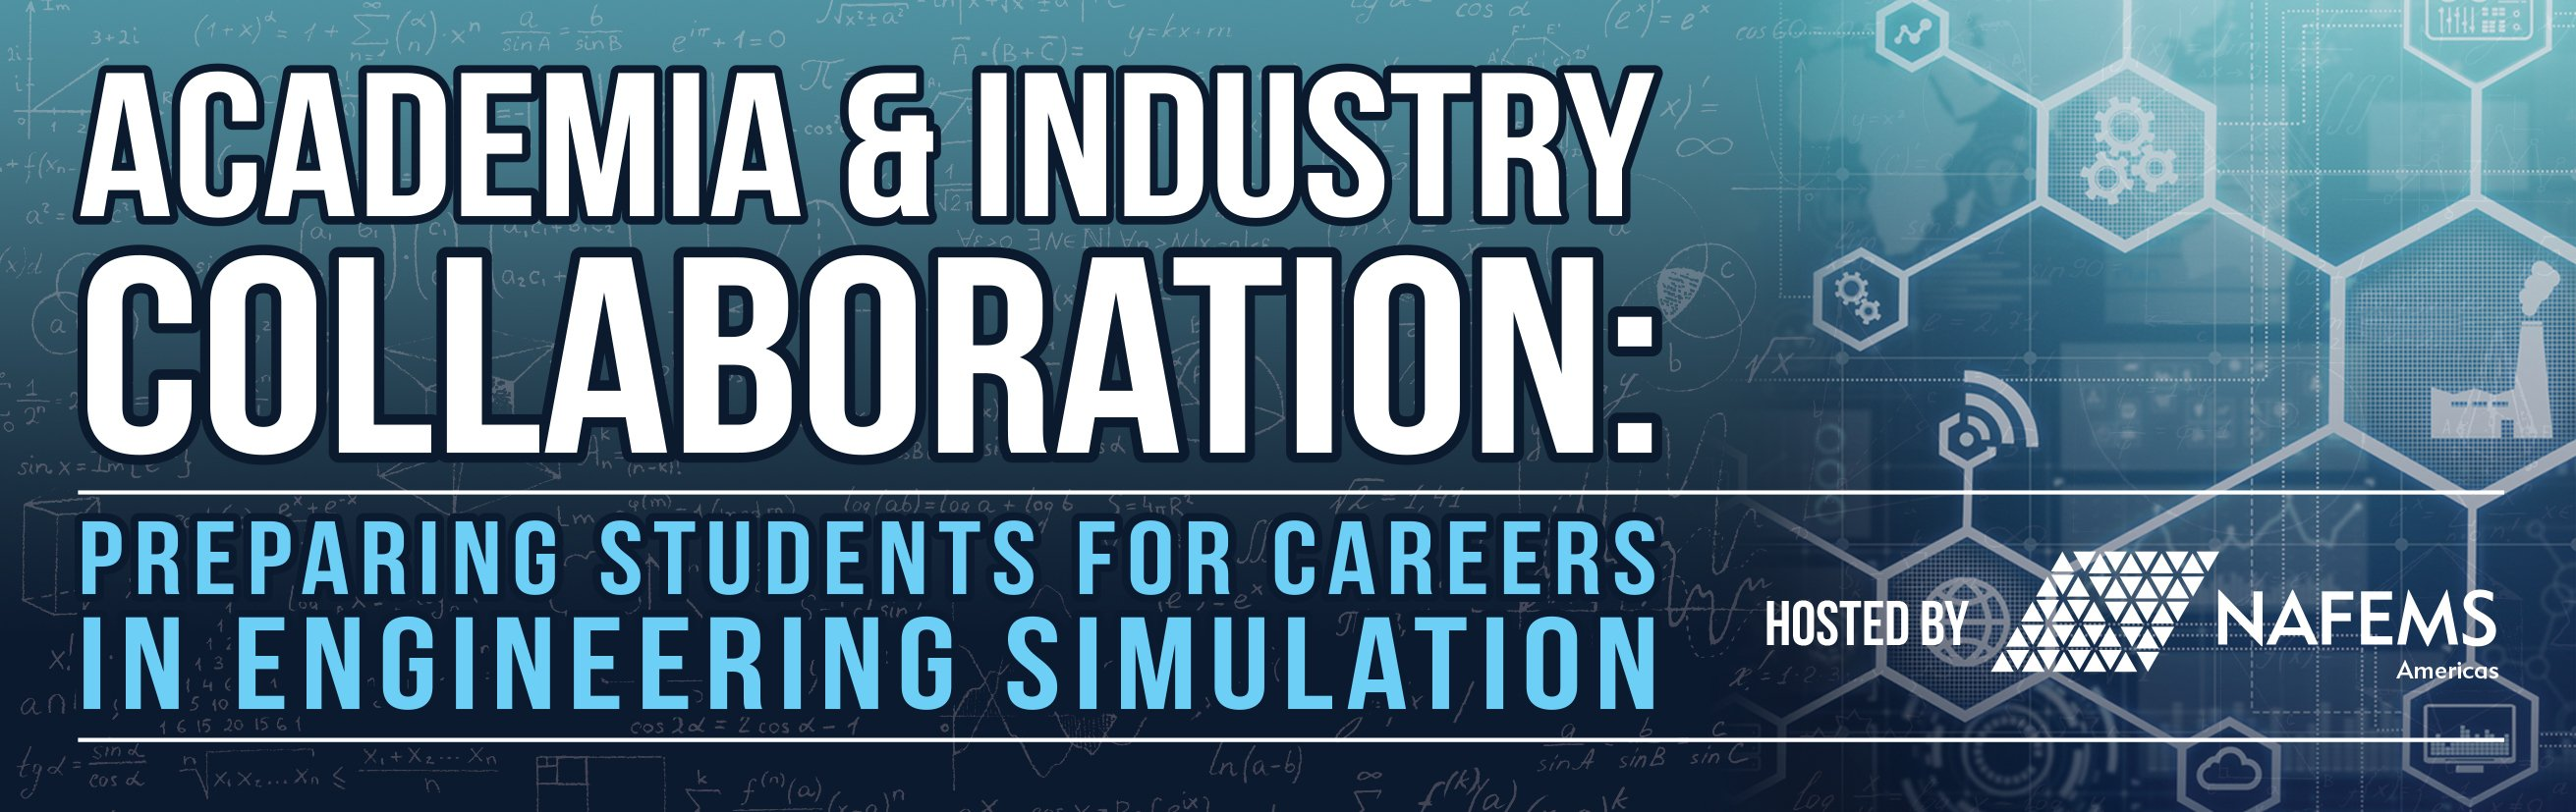 Academia & Industry Collaboration: Preparing Students for Careers in Engineering Simulation